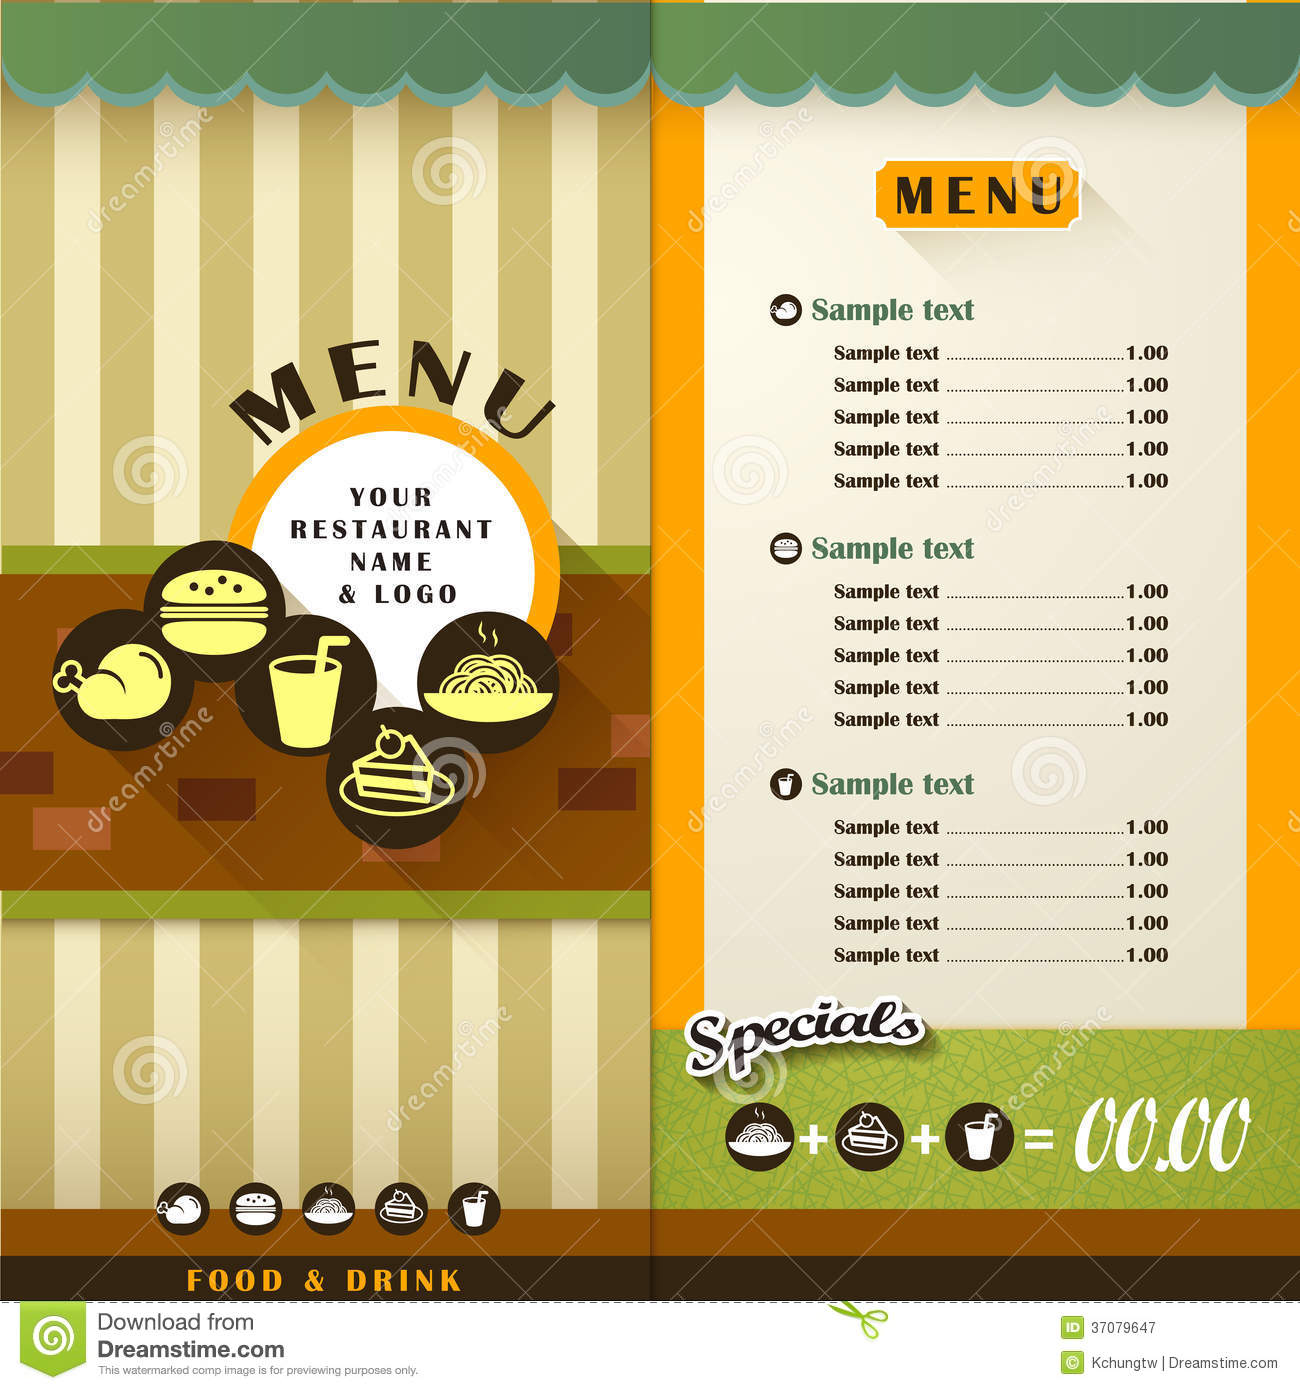 Restaurant menu stock vector illustration of cooking for Cafe menu design template free download